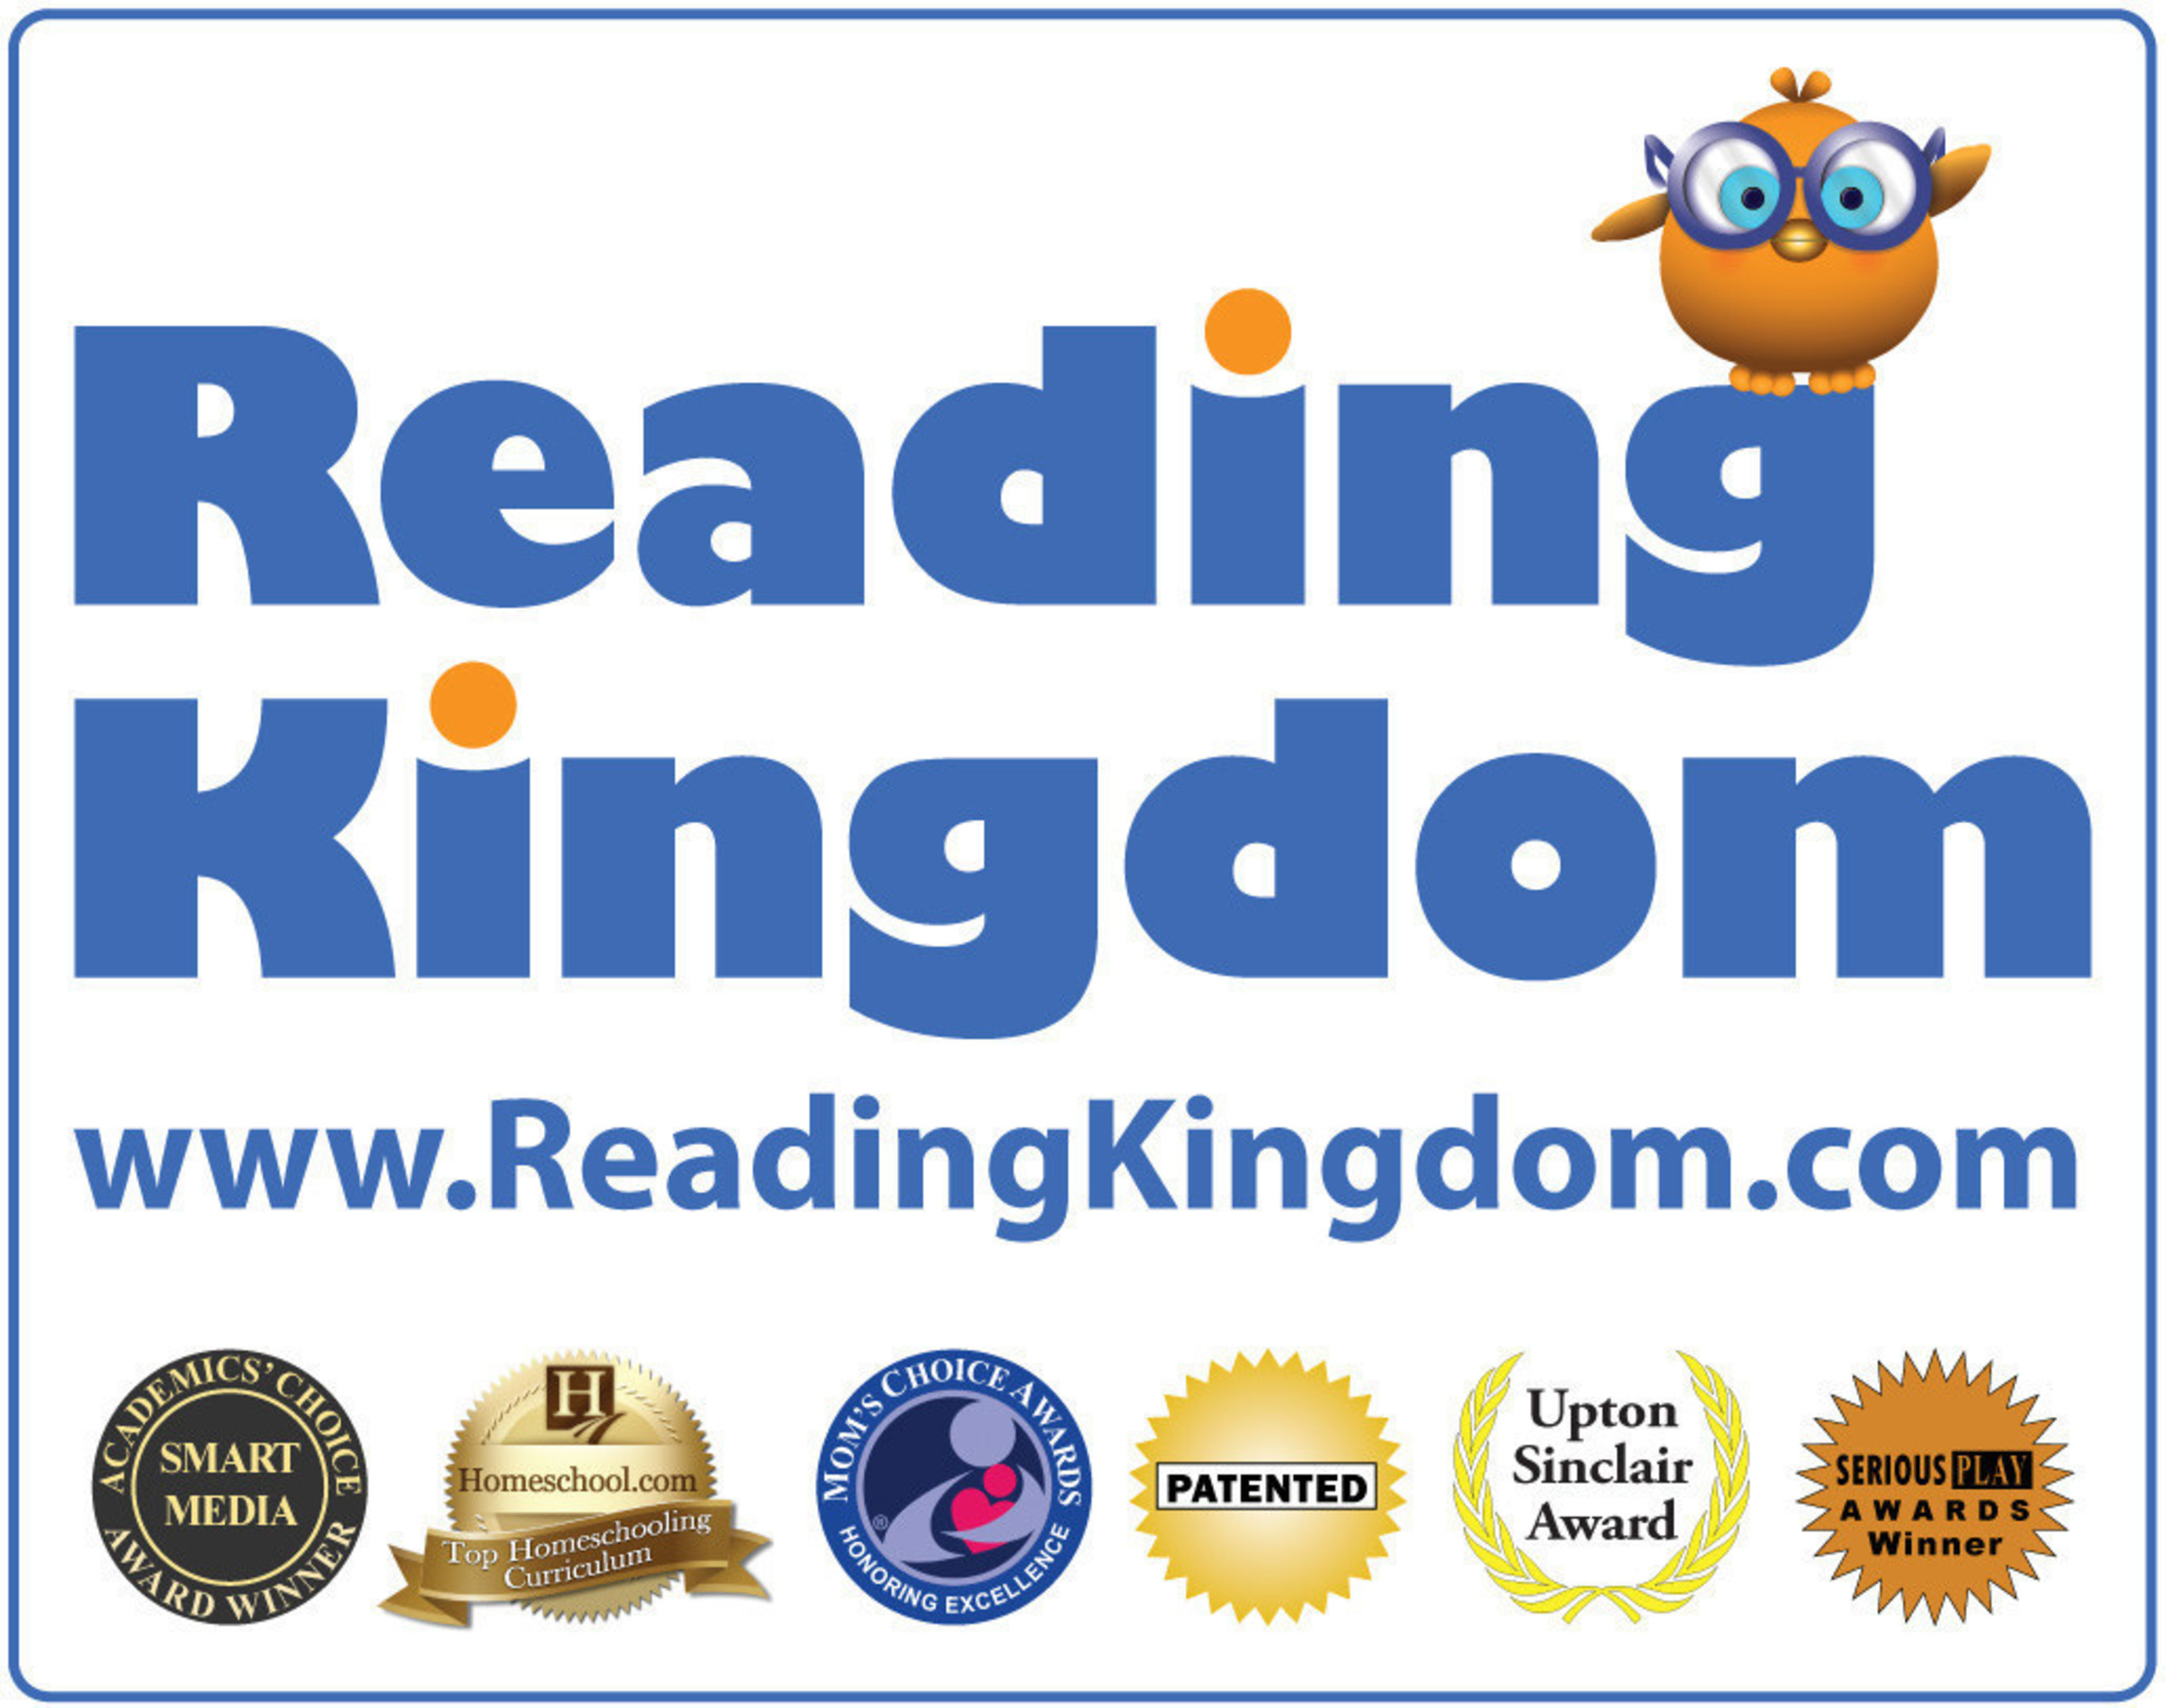 Reading Kingdom Online Reading Program Wins Academics' Choice Smart Media Award for Mind-Building Excellence